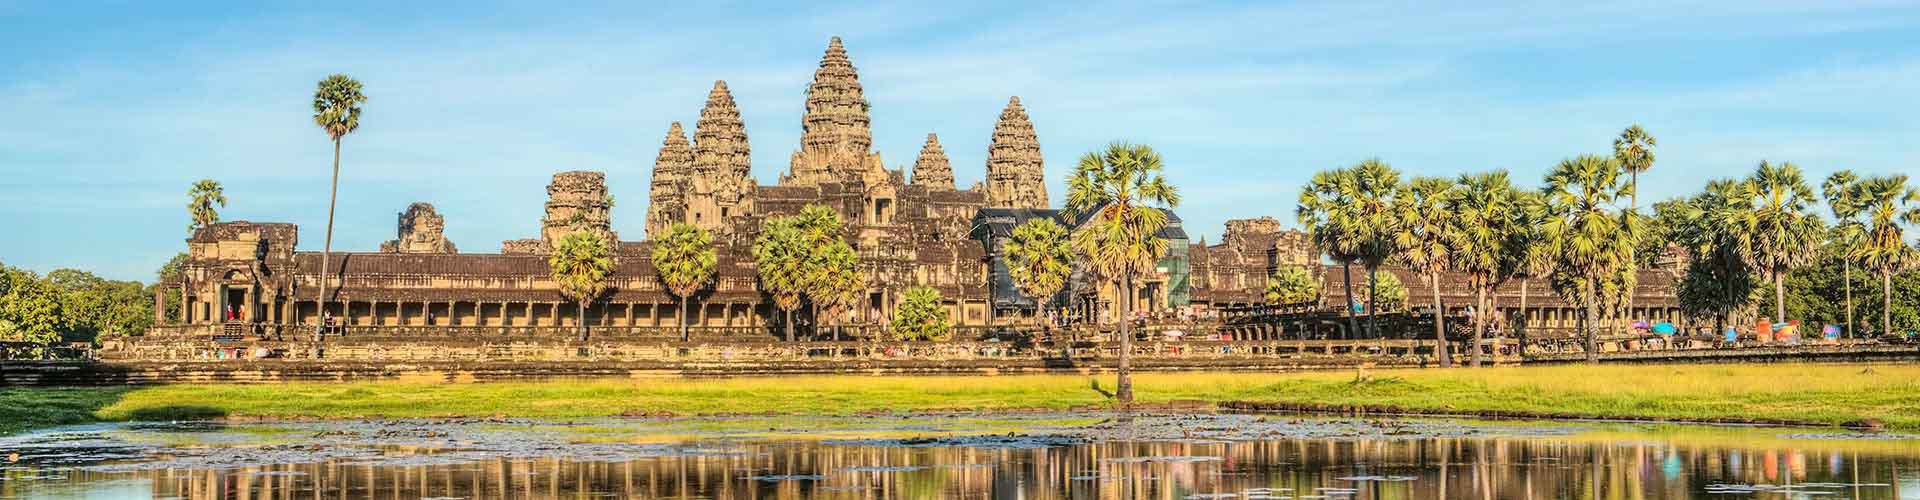 Siem Reap – Hotels for students in Siem Reap. Maps of Kambodza, photos and reviews for each hotel for student in Siem Reap.